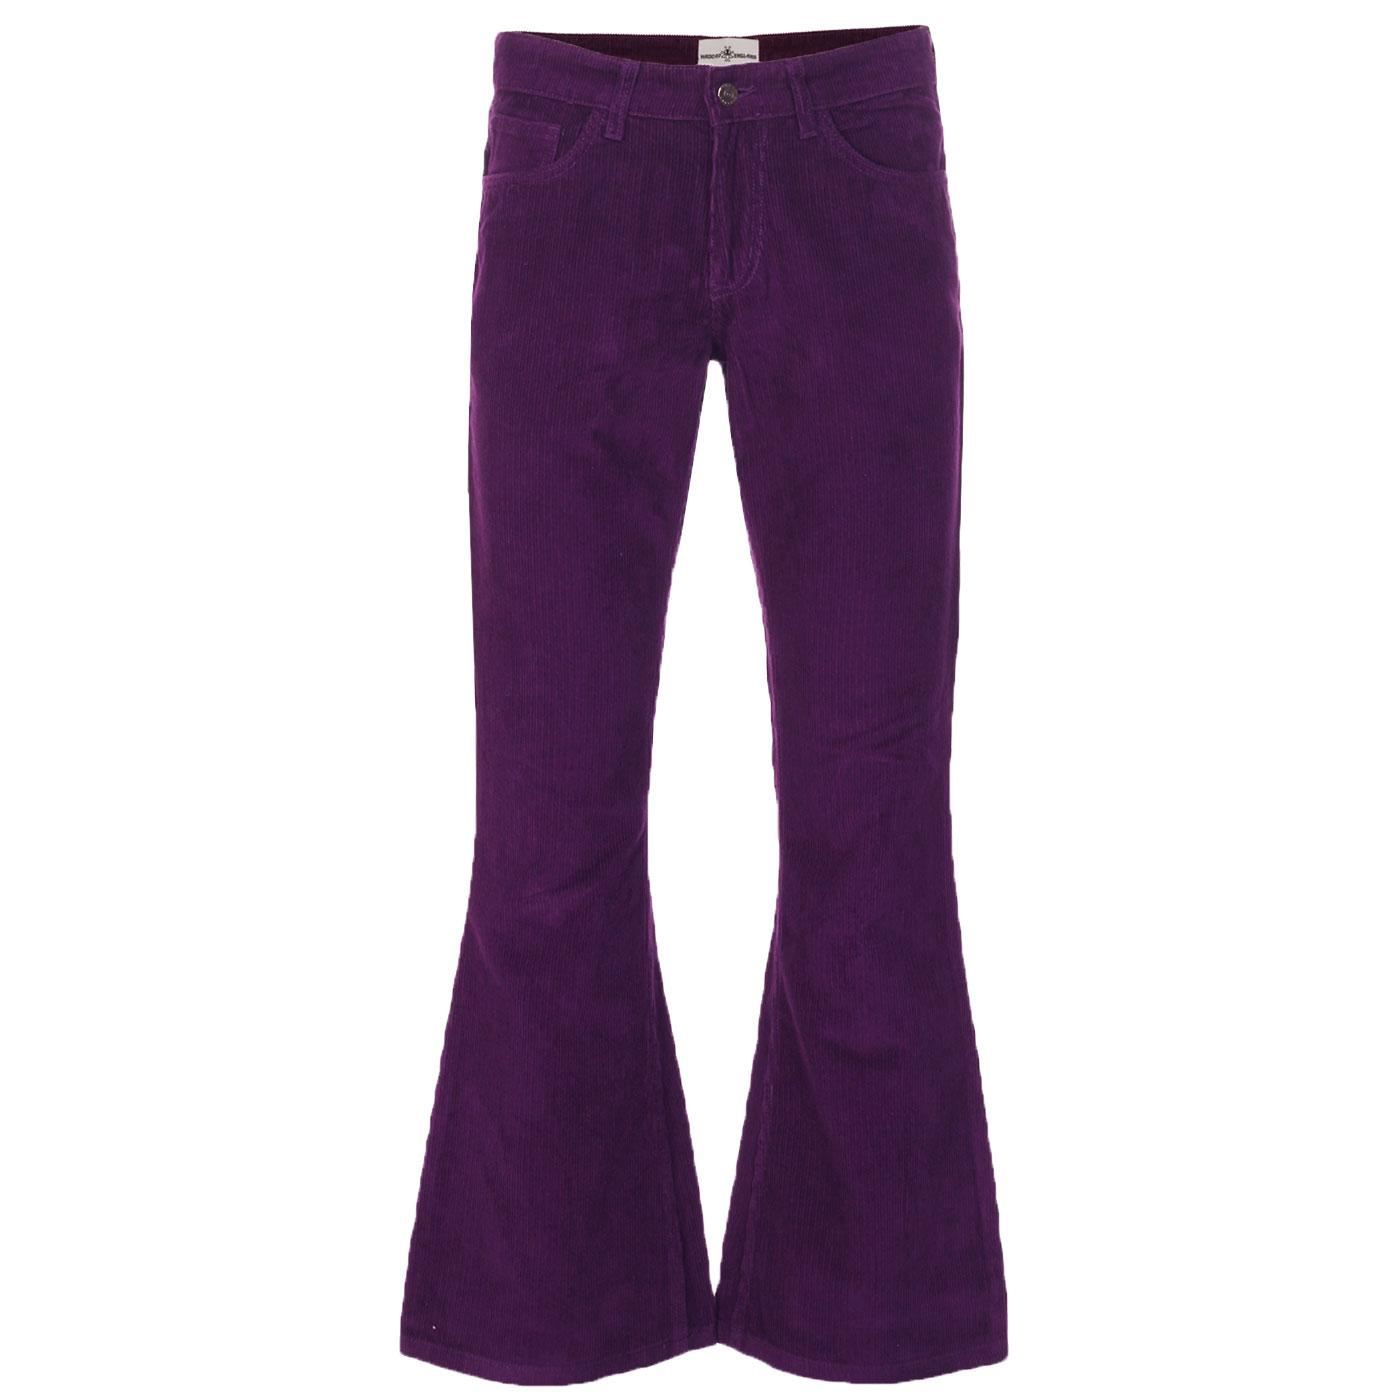 Madcap England Retro 70s Cord Killer Flares in Imperial Purple